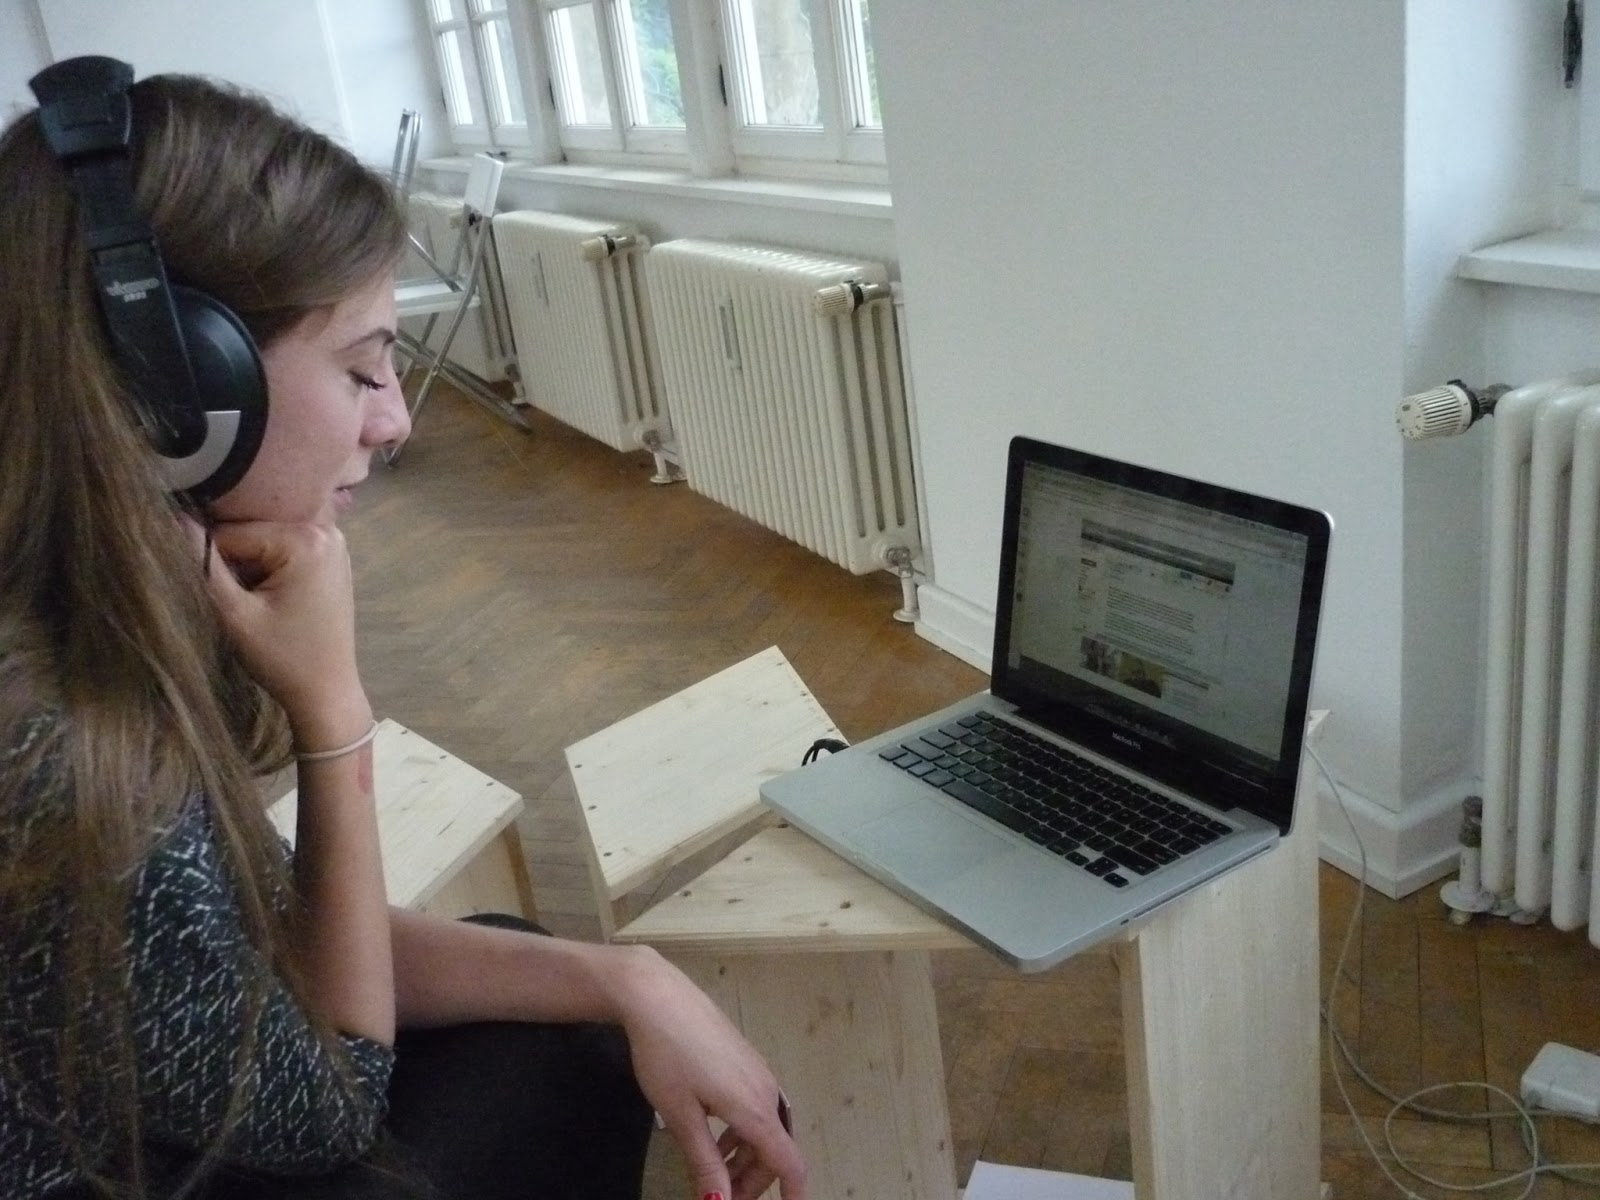 100 days of e-flux , documentation of four hour livestreamed event, 2013